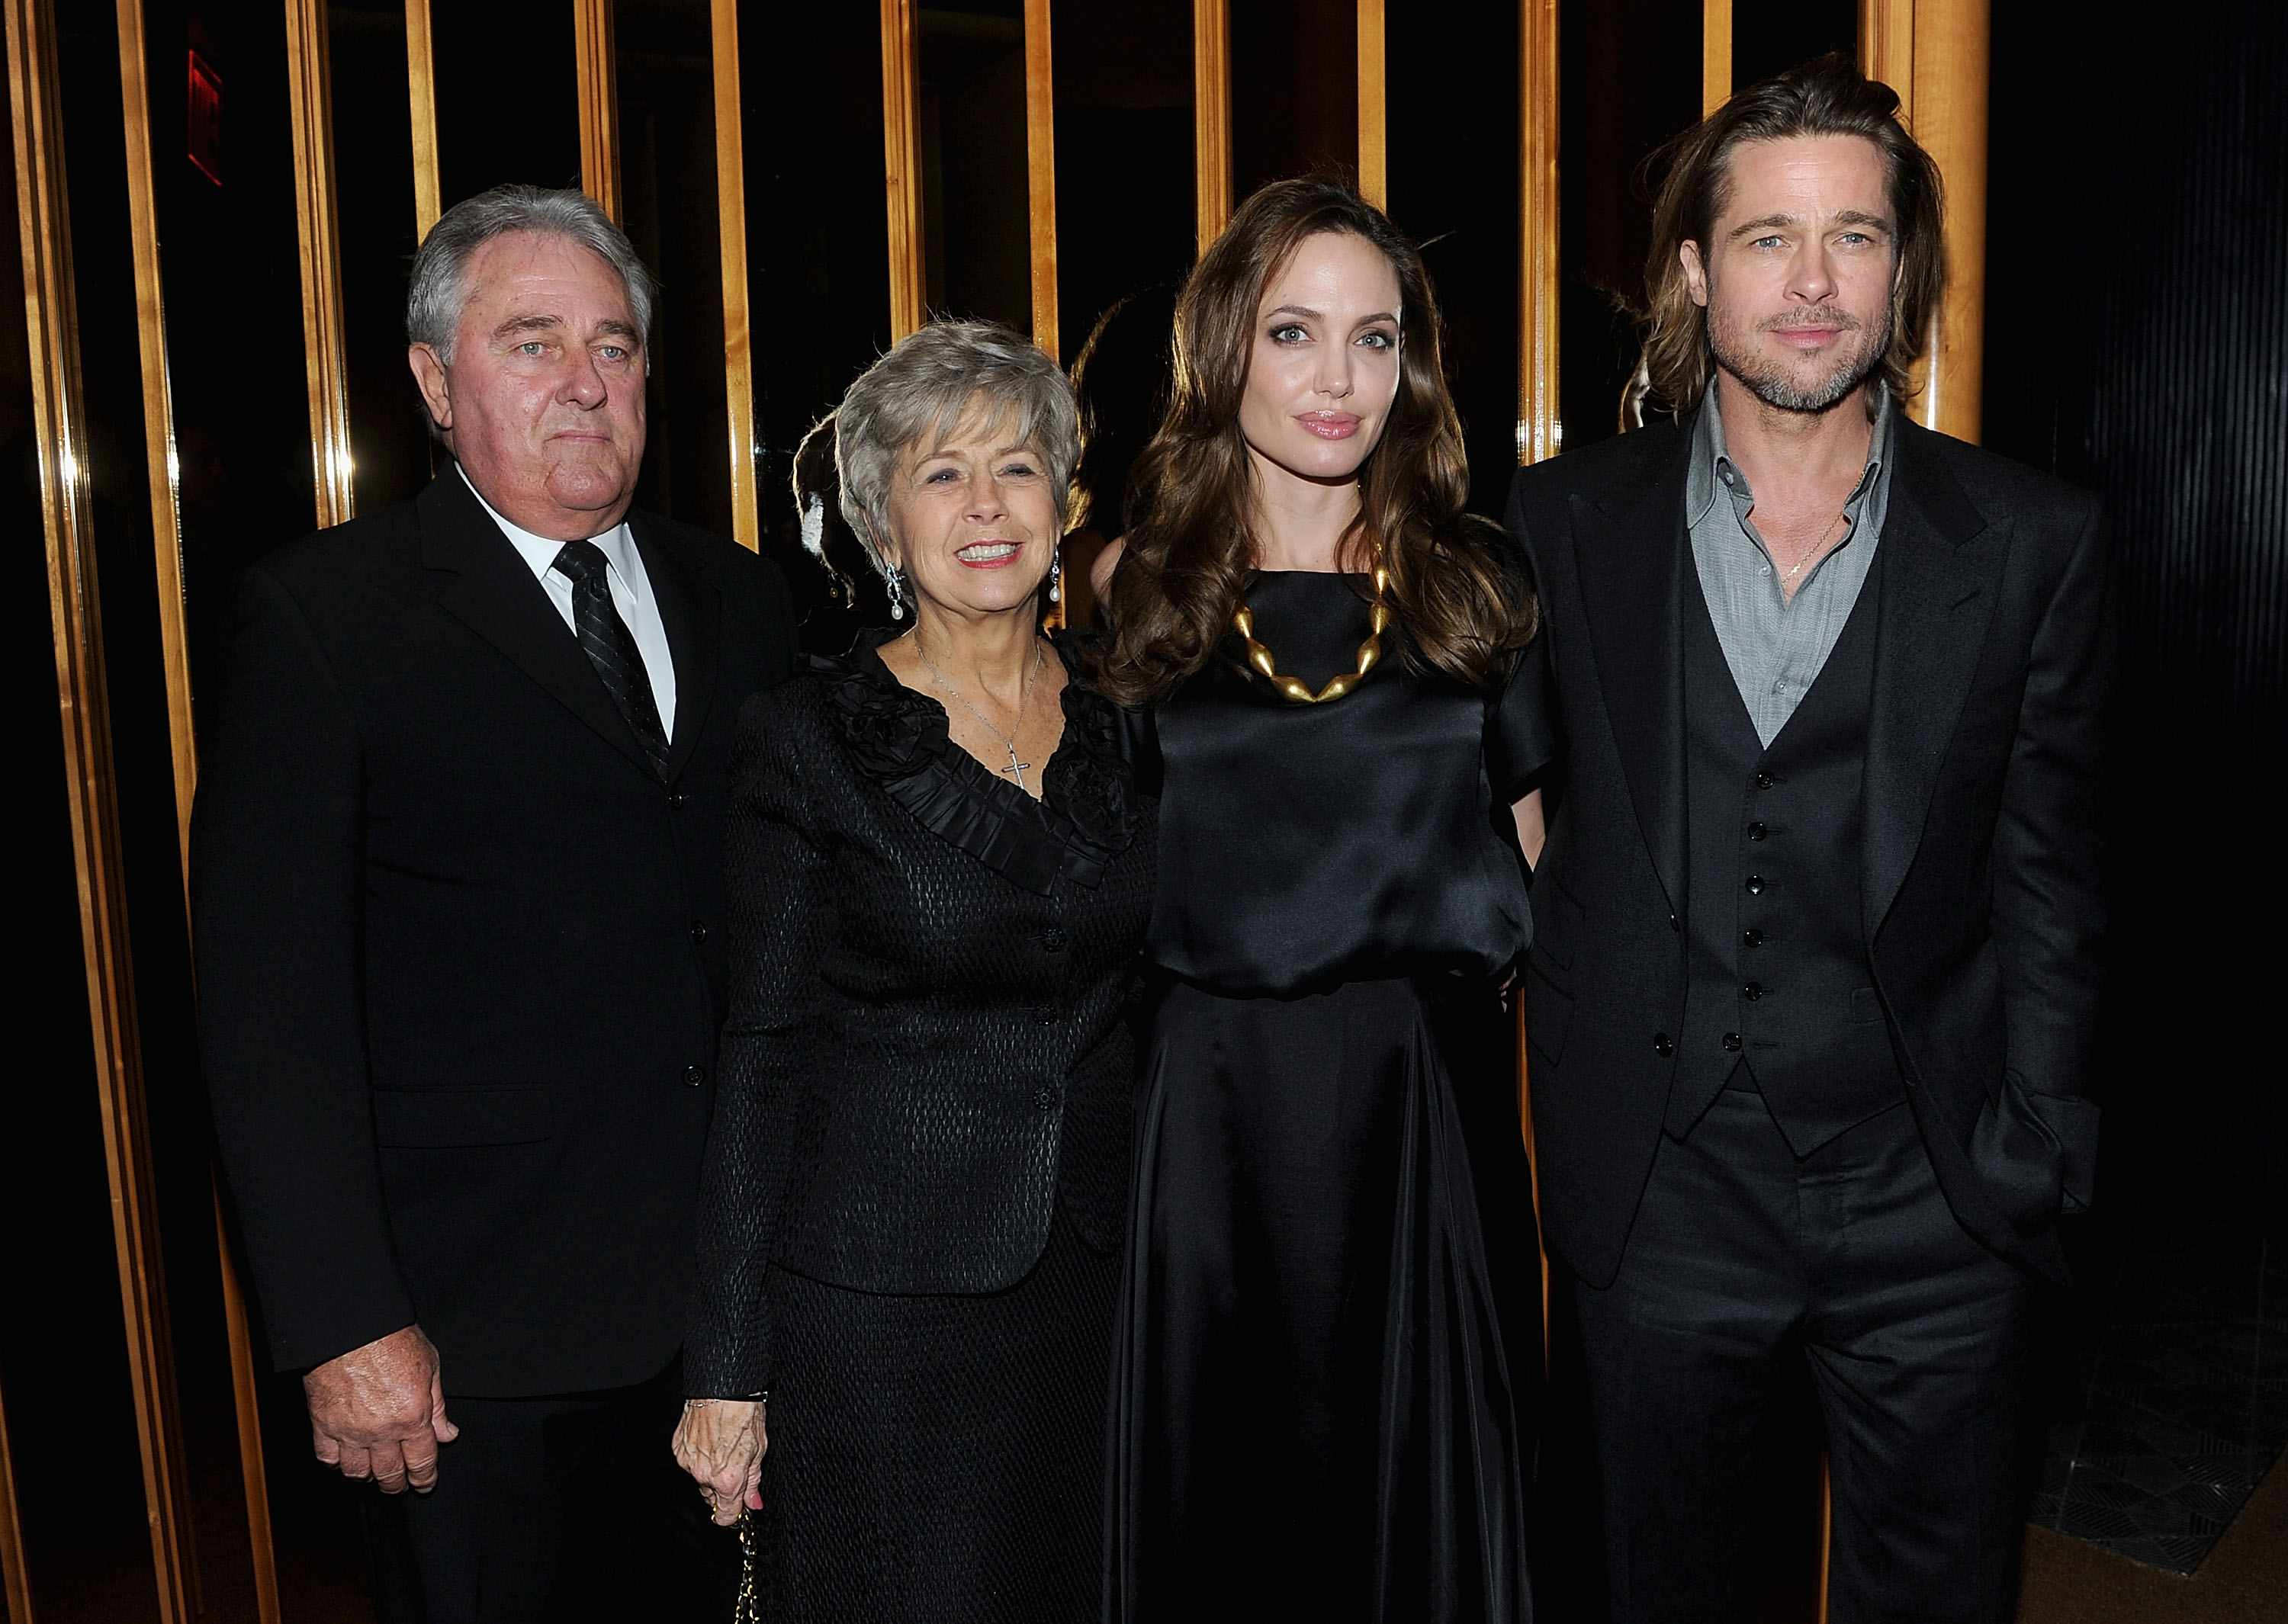 It was a family affair for Angelina Jolie and Brad Pitt when his parents, Jane and Bill, joined them at her NYC premiere of In the Land of Blood and Honey.